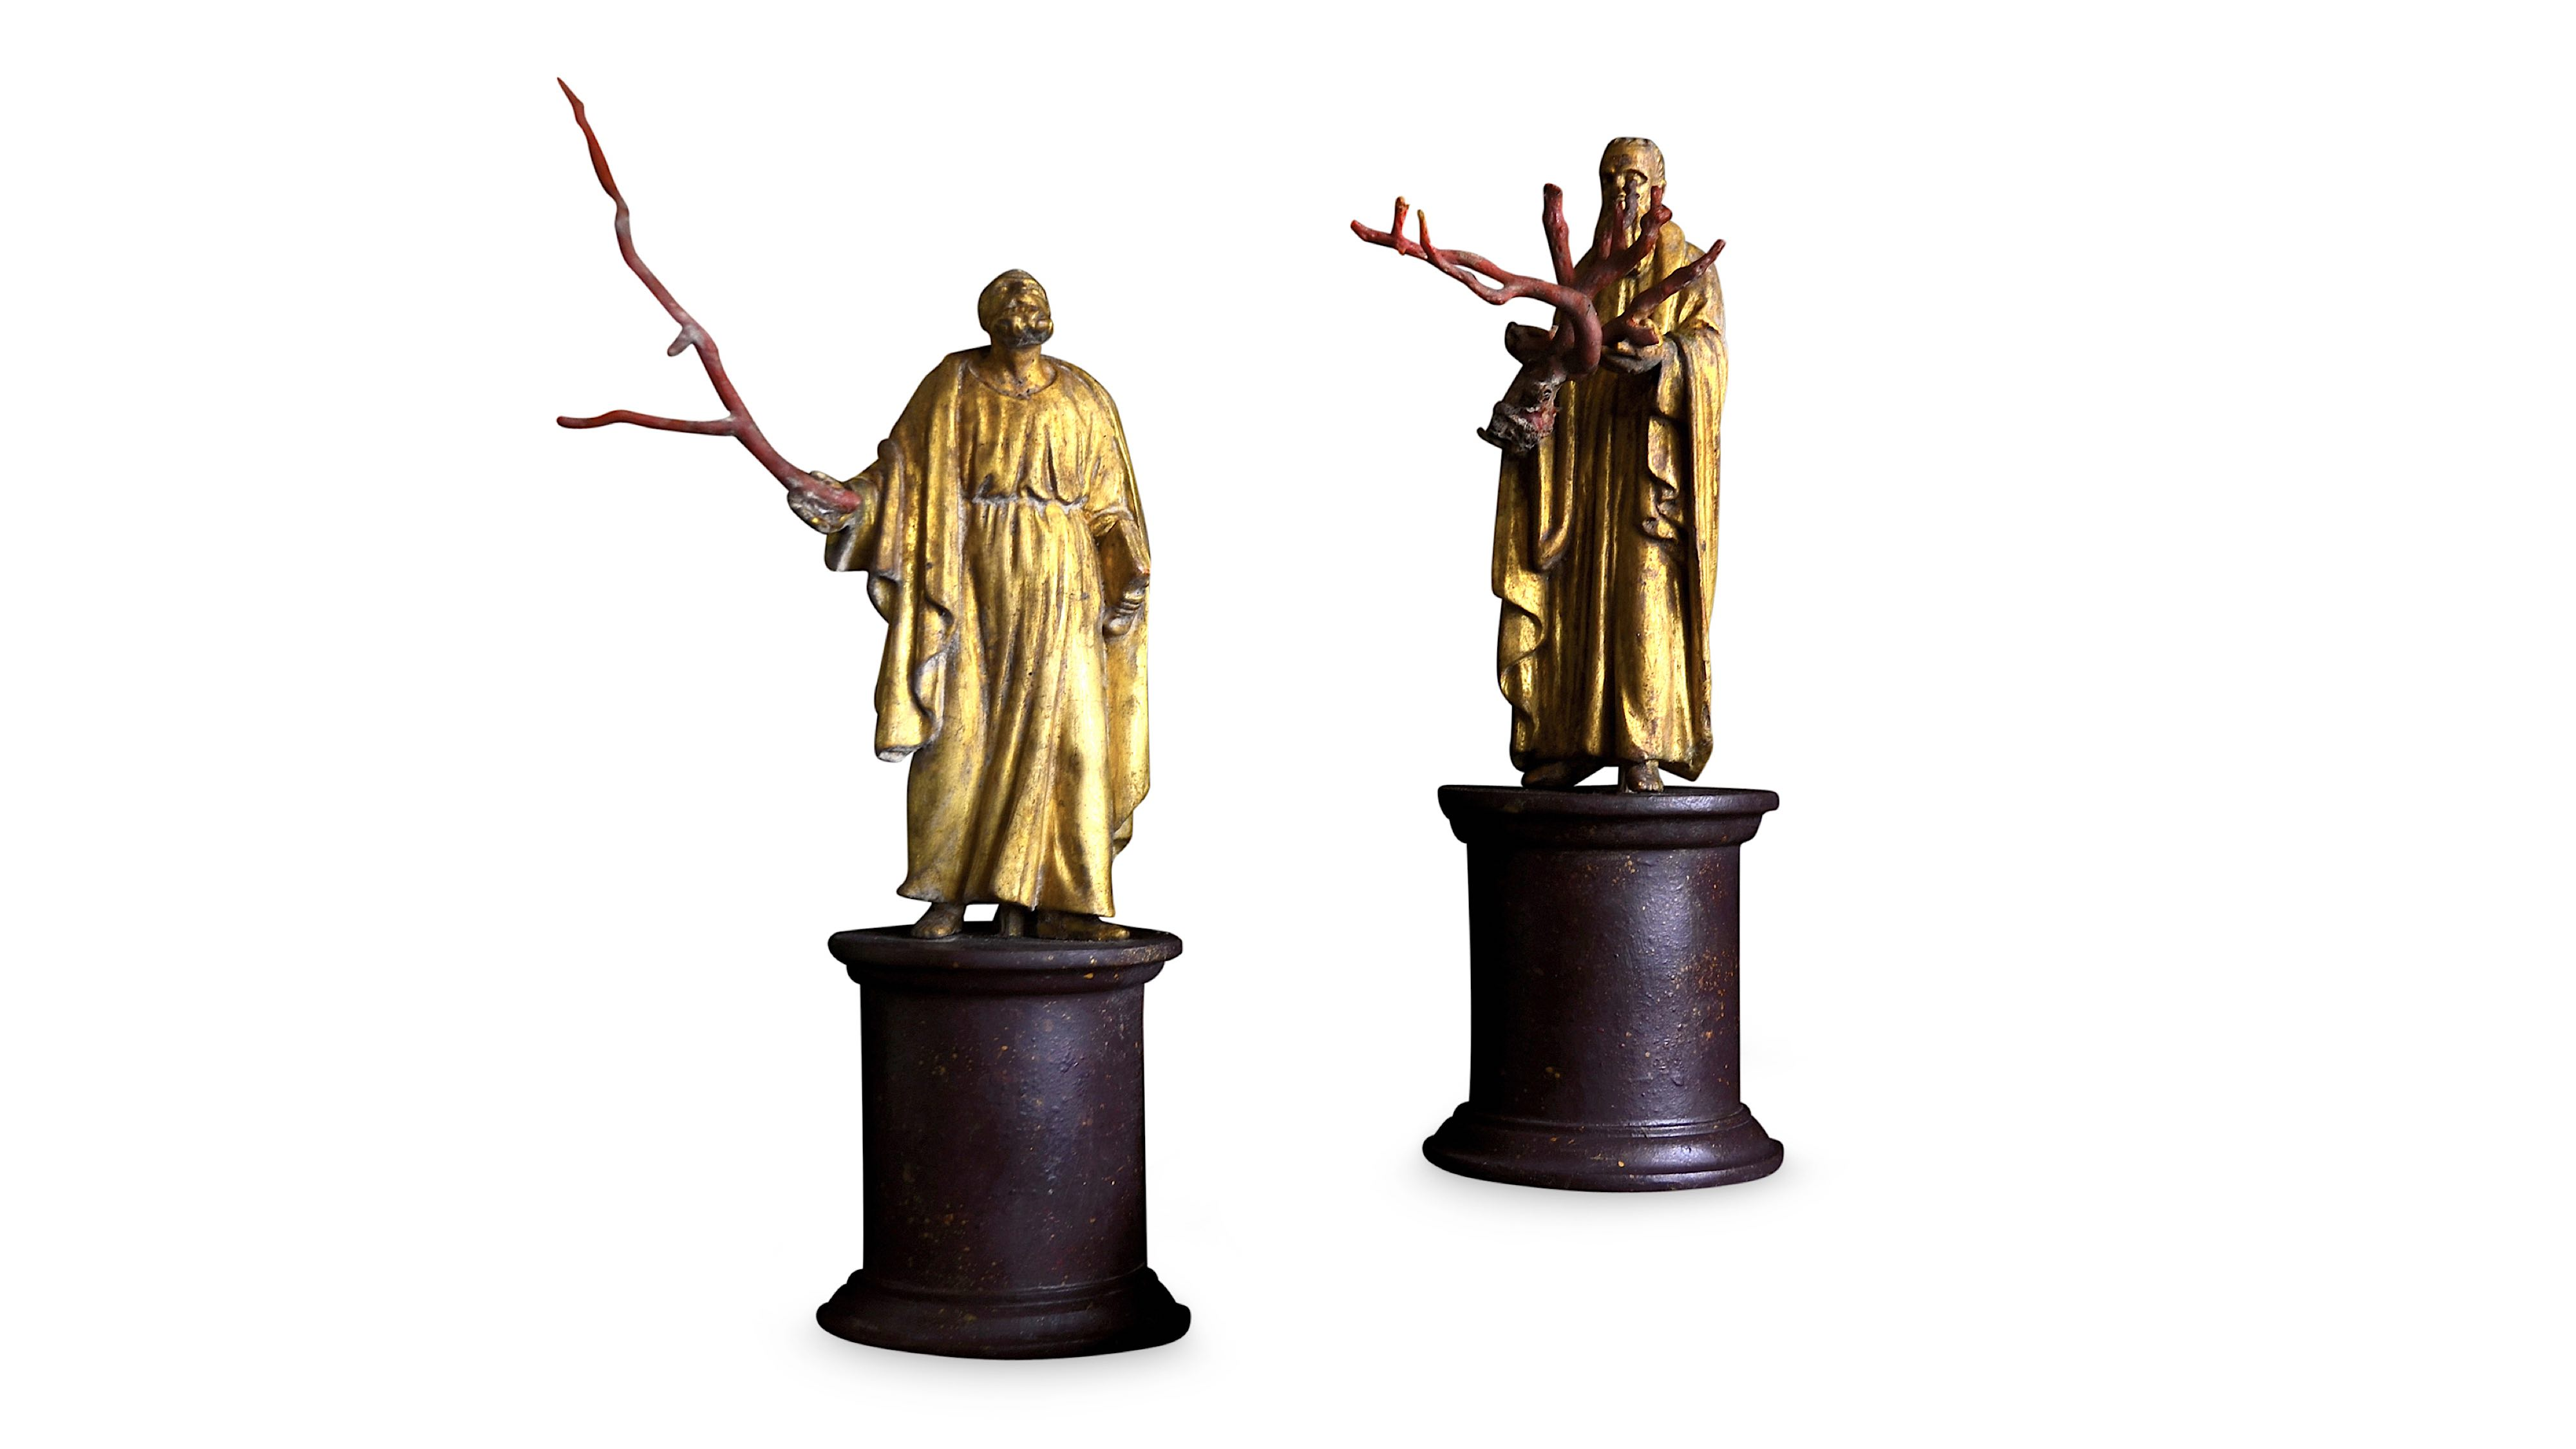 Lot 31 - A PAIR OF 19TH CENTURY ITALIAN GILTWOOD AND COPPER FIGURES OF SAINTS